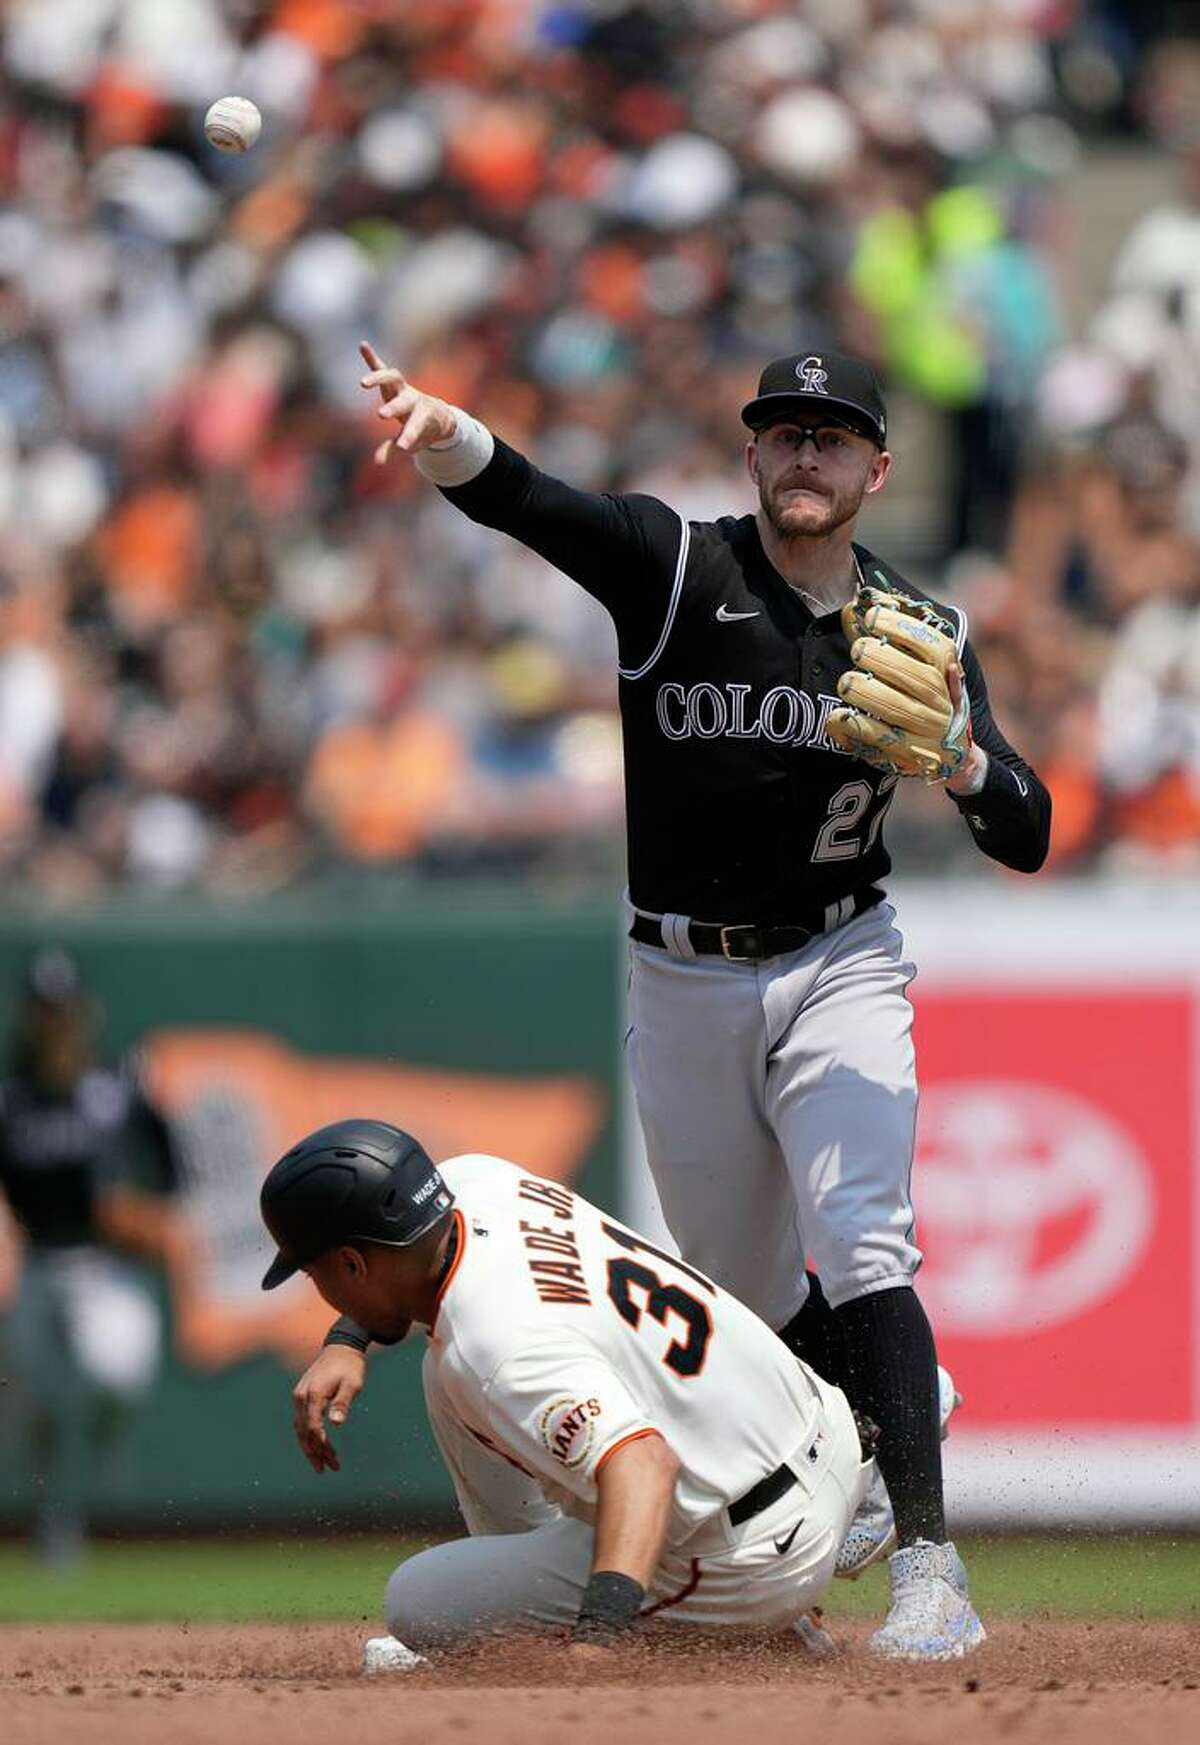 SAN FRANCISCO, CALIFORNIA - AUGUST 15: Trevor Story #27 of the Colorado Rockies completes the double-play throwing over the top of LaMonte Wade Jr #31 of the San Francisco Giants in the bottom of the third inning at Oracle Park on August 15, 2021 in San Francisco, California. (Photo by Thearon W. Henderson/Getty Images)